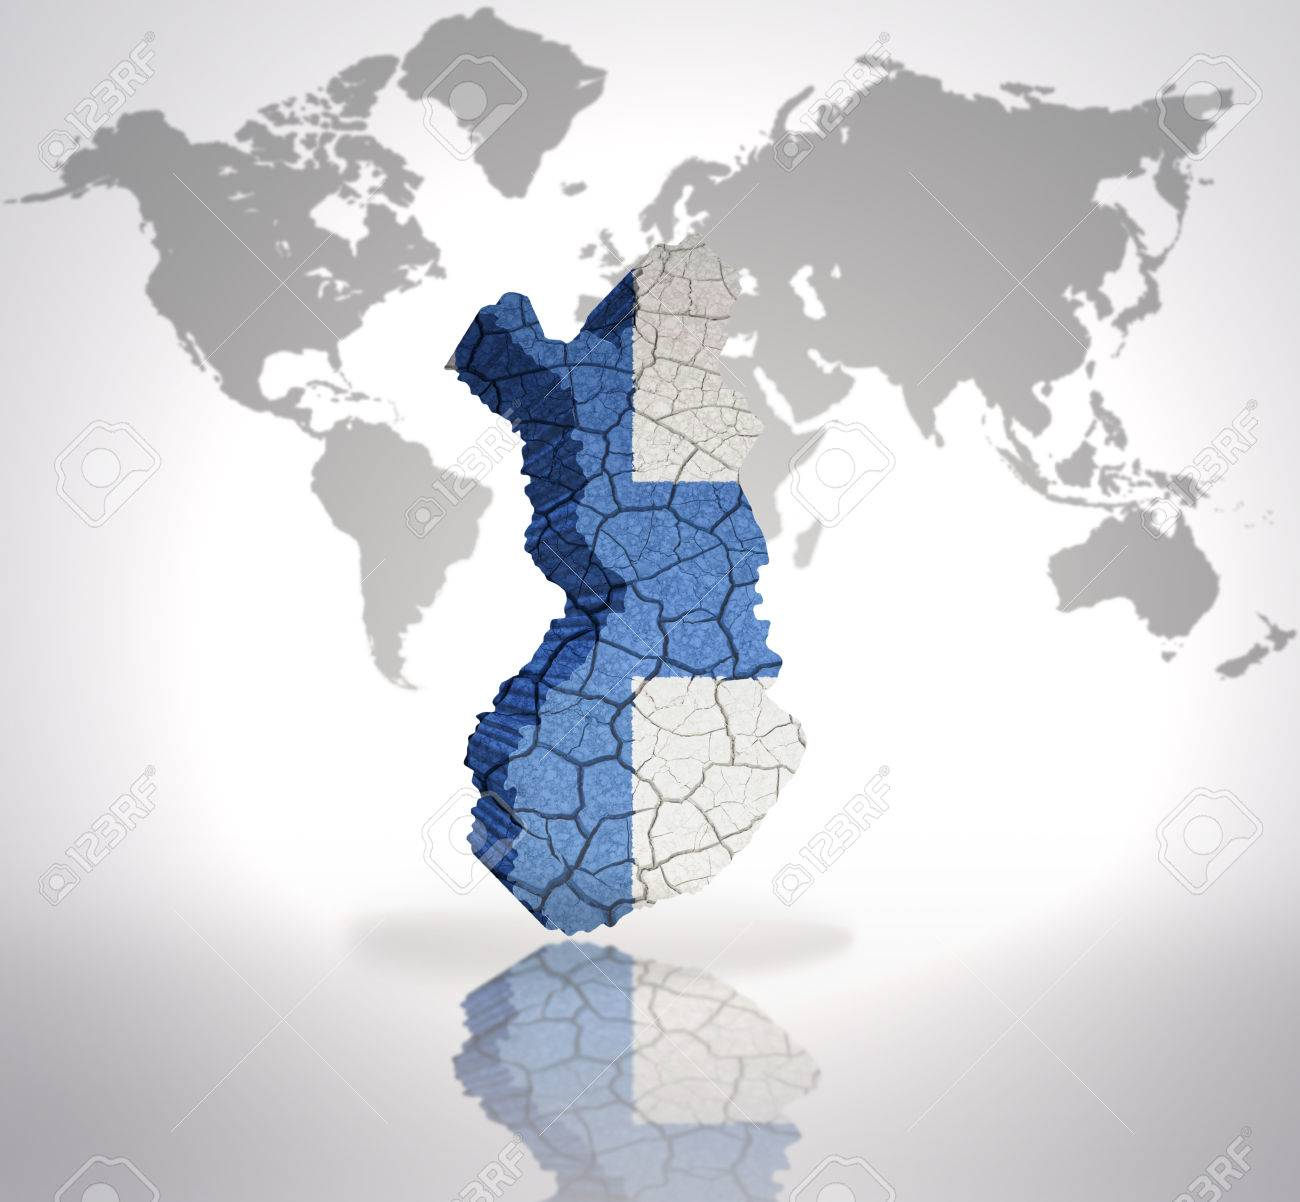 Map of finland with finnish flag on a world map background stock map of finland with finnish flag on a world map background stock photo 32714948 publicscrutiny Images